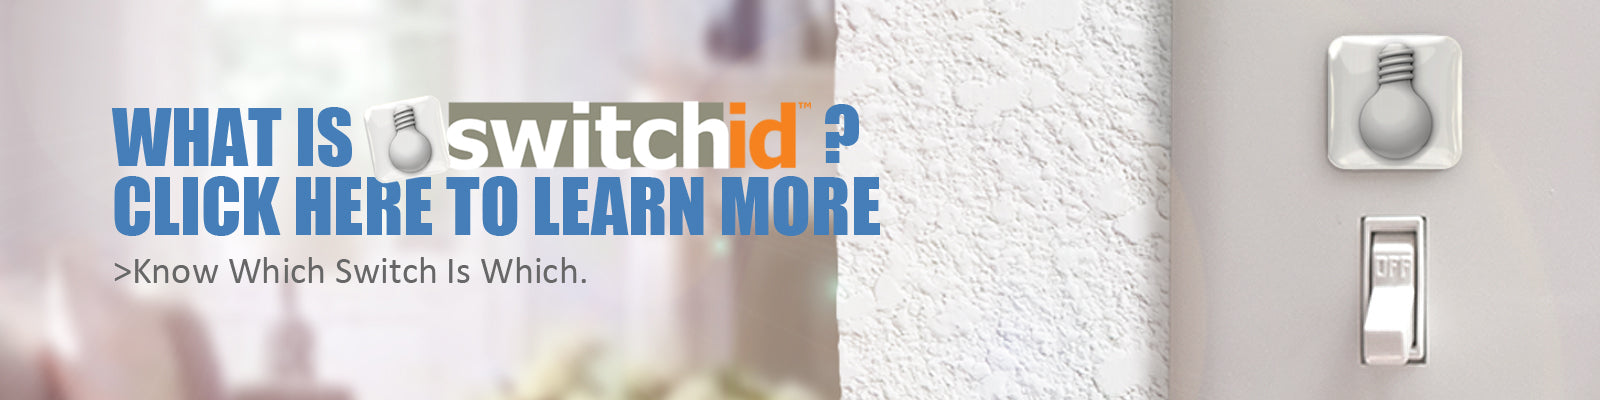 Home Modifications for Elderly with SwitchID